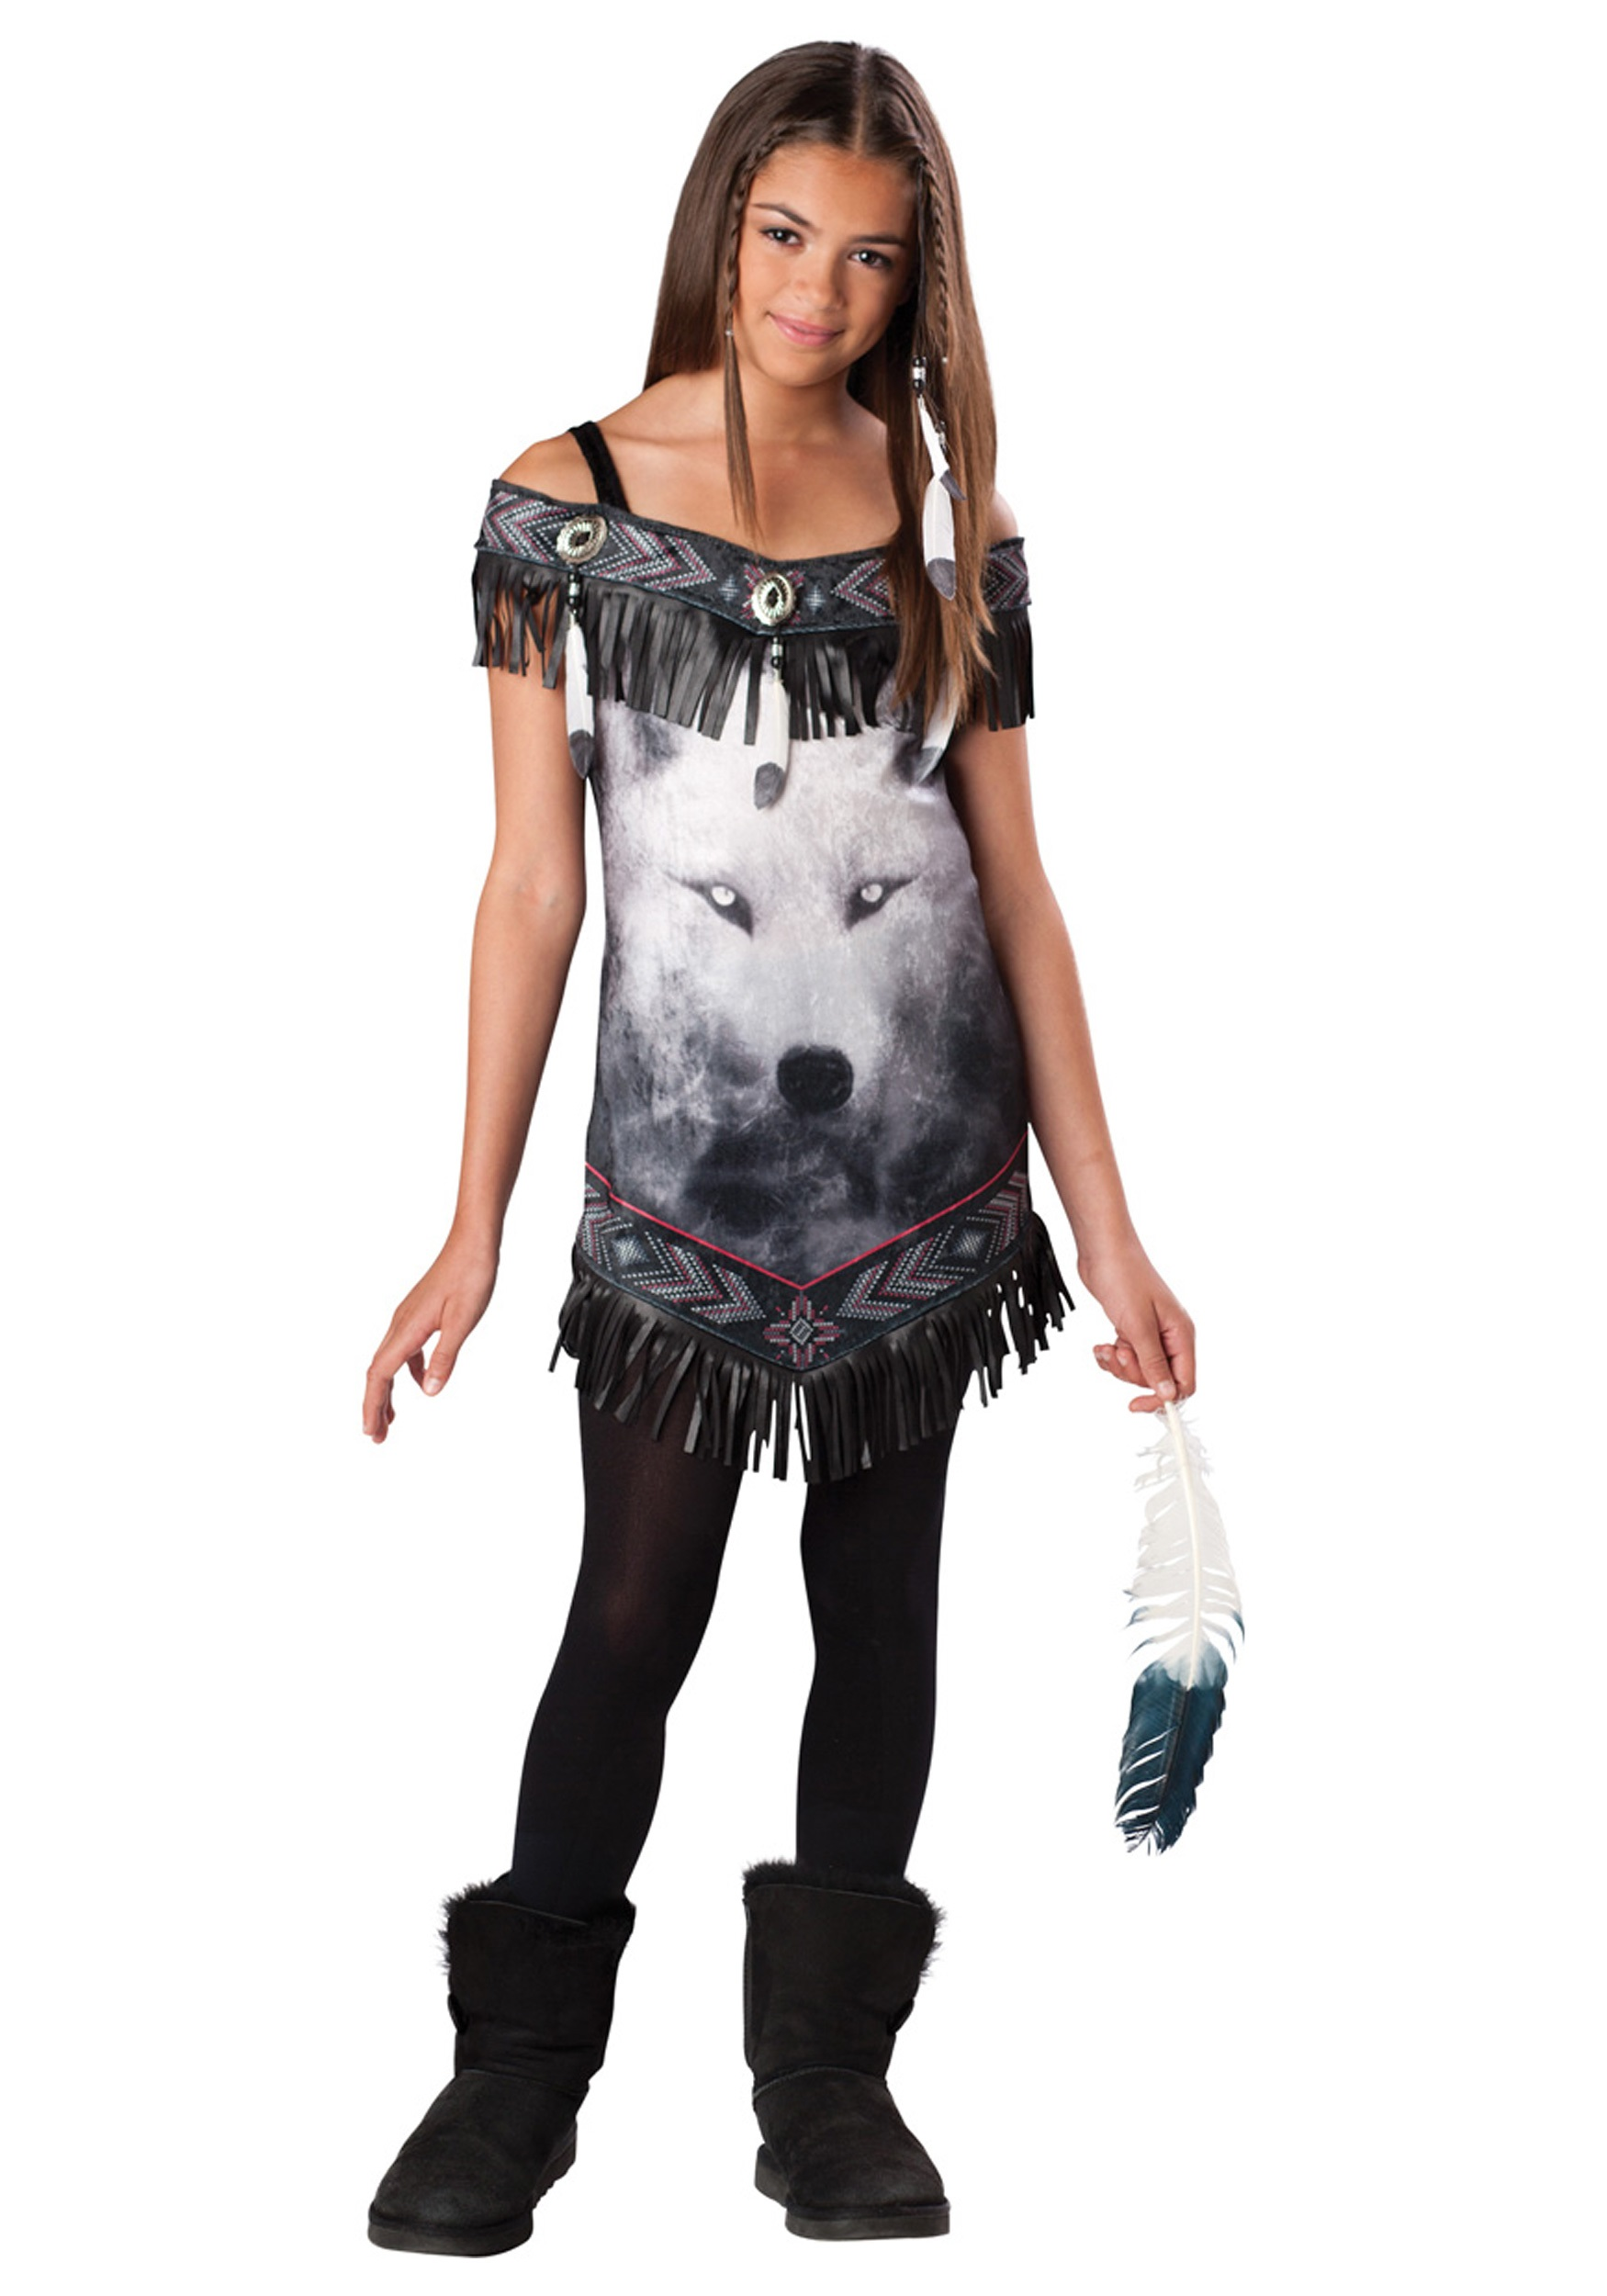 Tween Indian Tribal Spirit Costume  sc 1 st  Halloween Costumes & Tween Indian Tribal Spirit Costume - Halloween Costumes